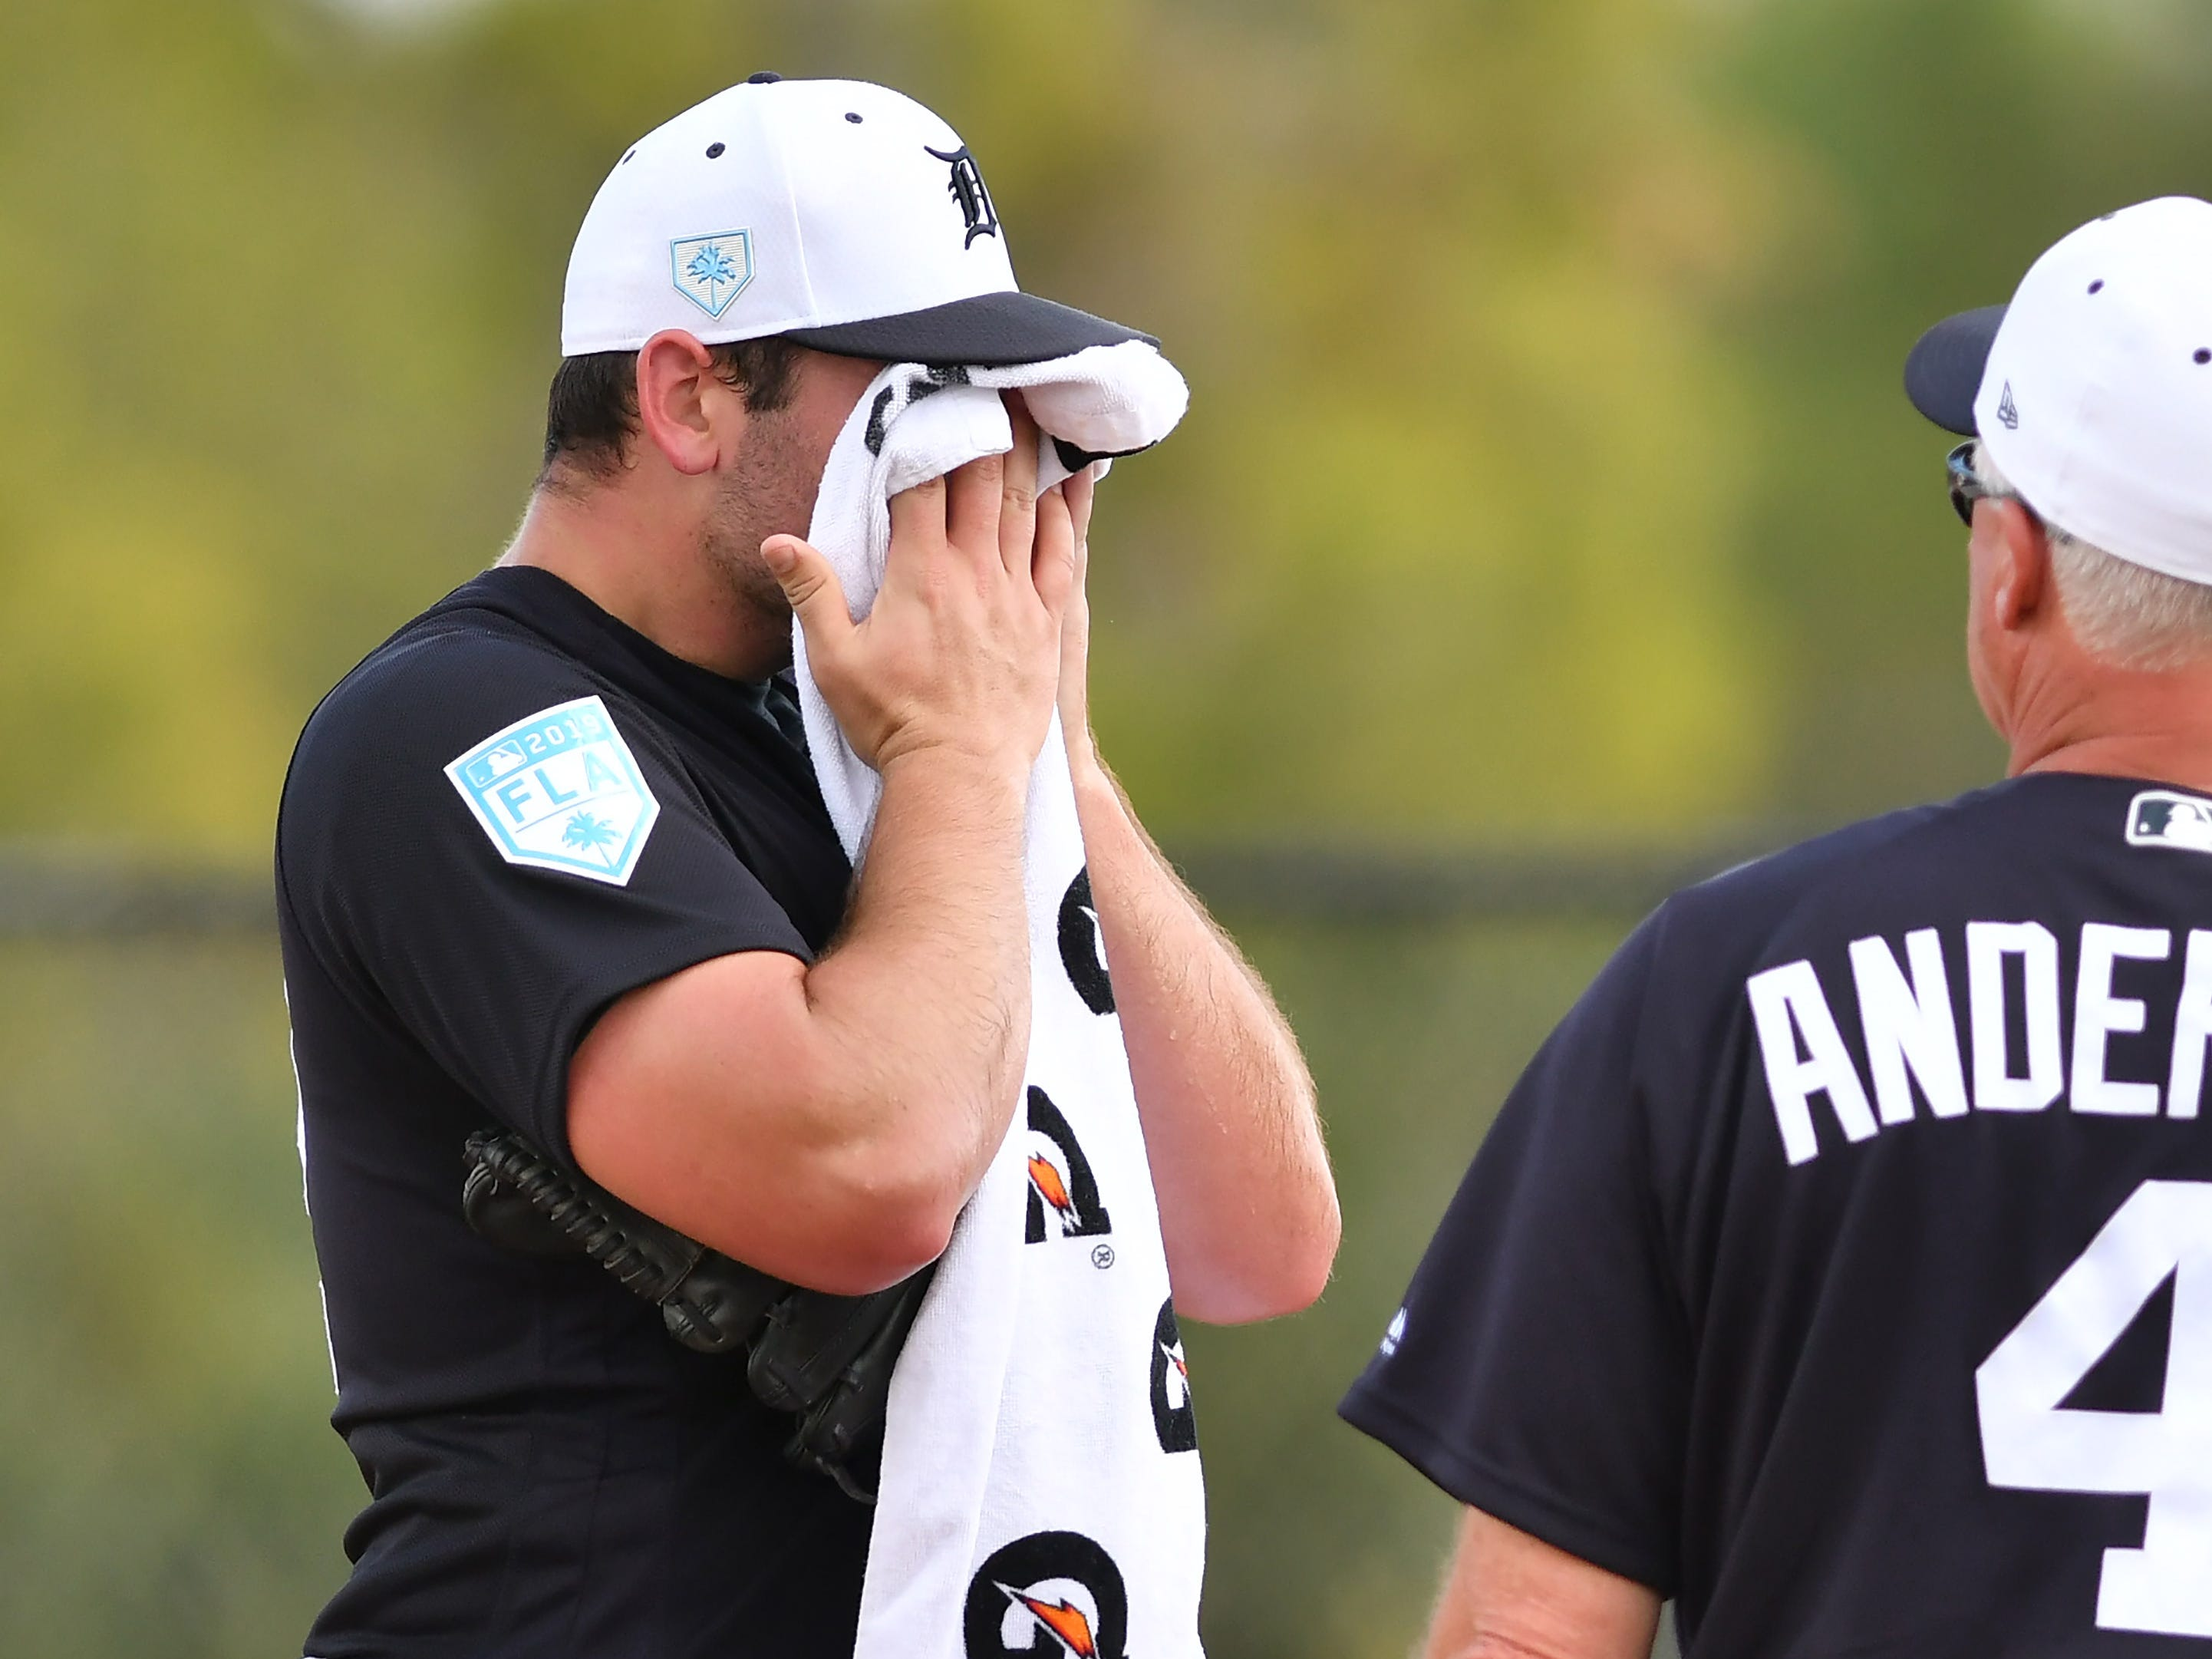 Tigers pitcher Michael Fulmer wipes off the sweat after his first live batting practice.